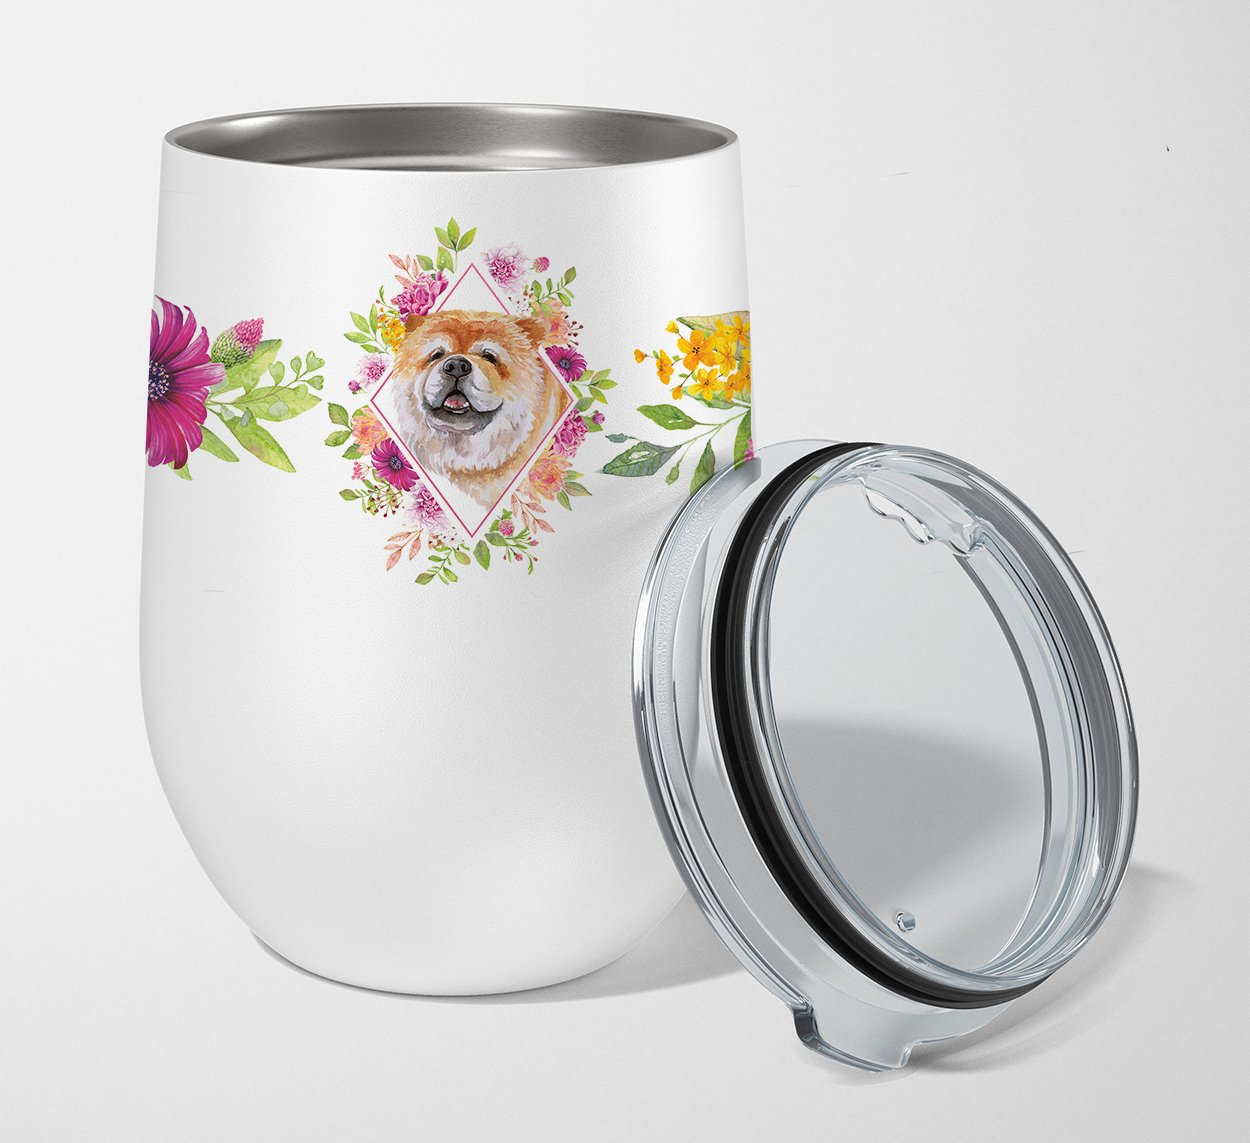 Chow Chow #2 Pink Flowers Stainless Steel 12 oz Stemless Wine Glass CK4132TBL12 by Caroline's Treasures